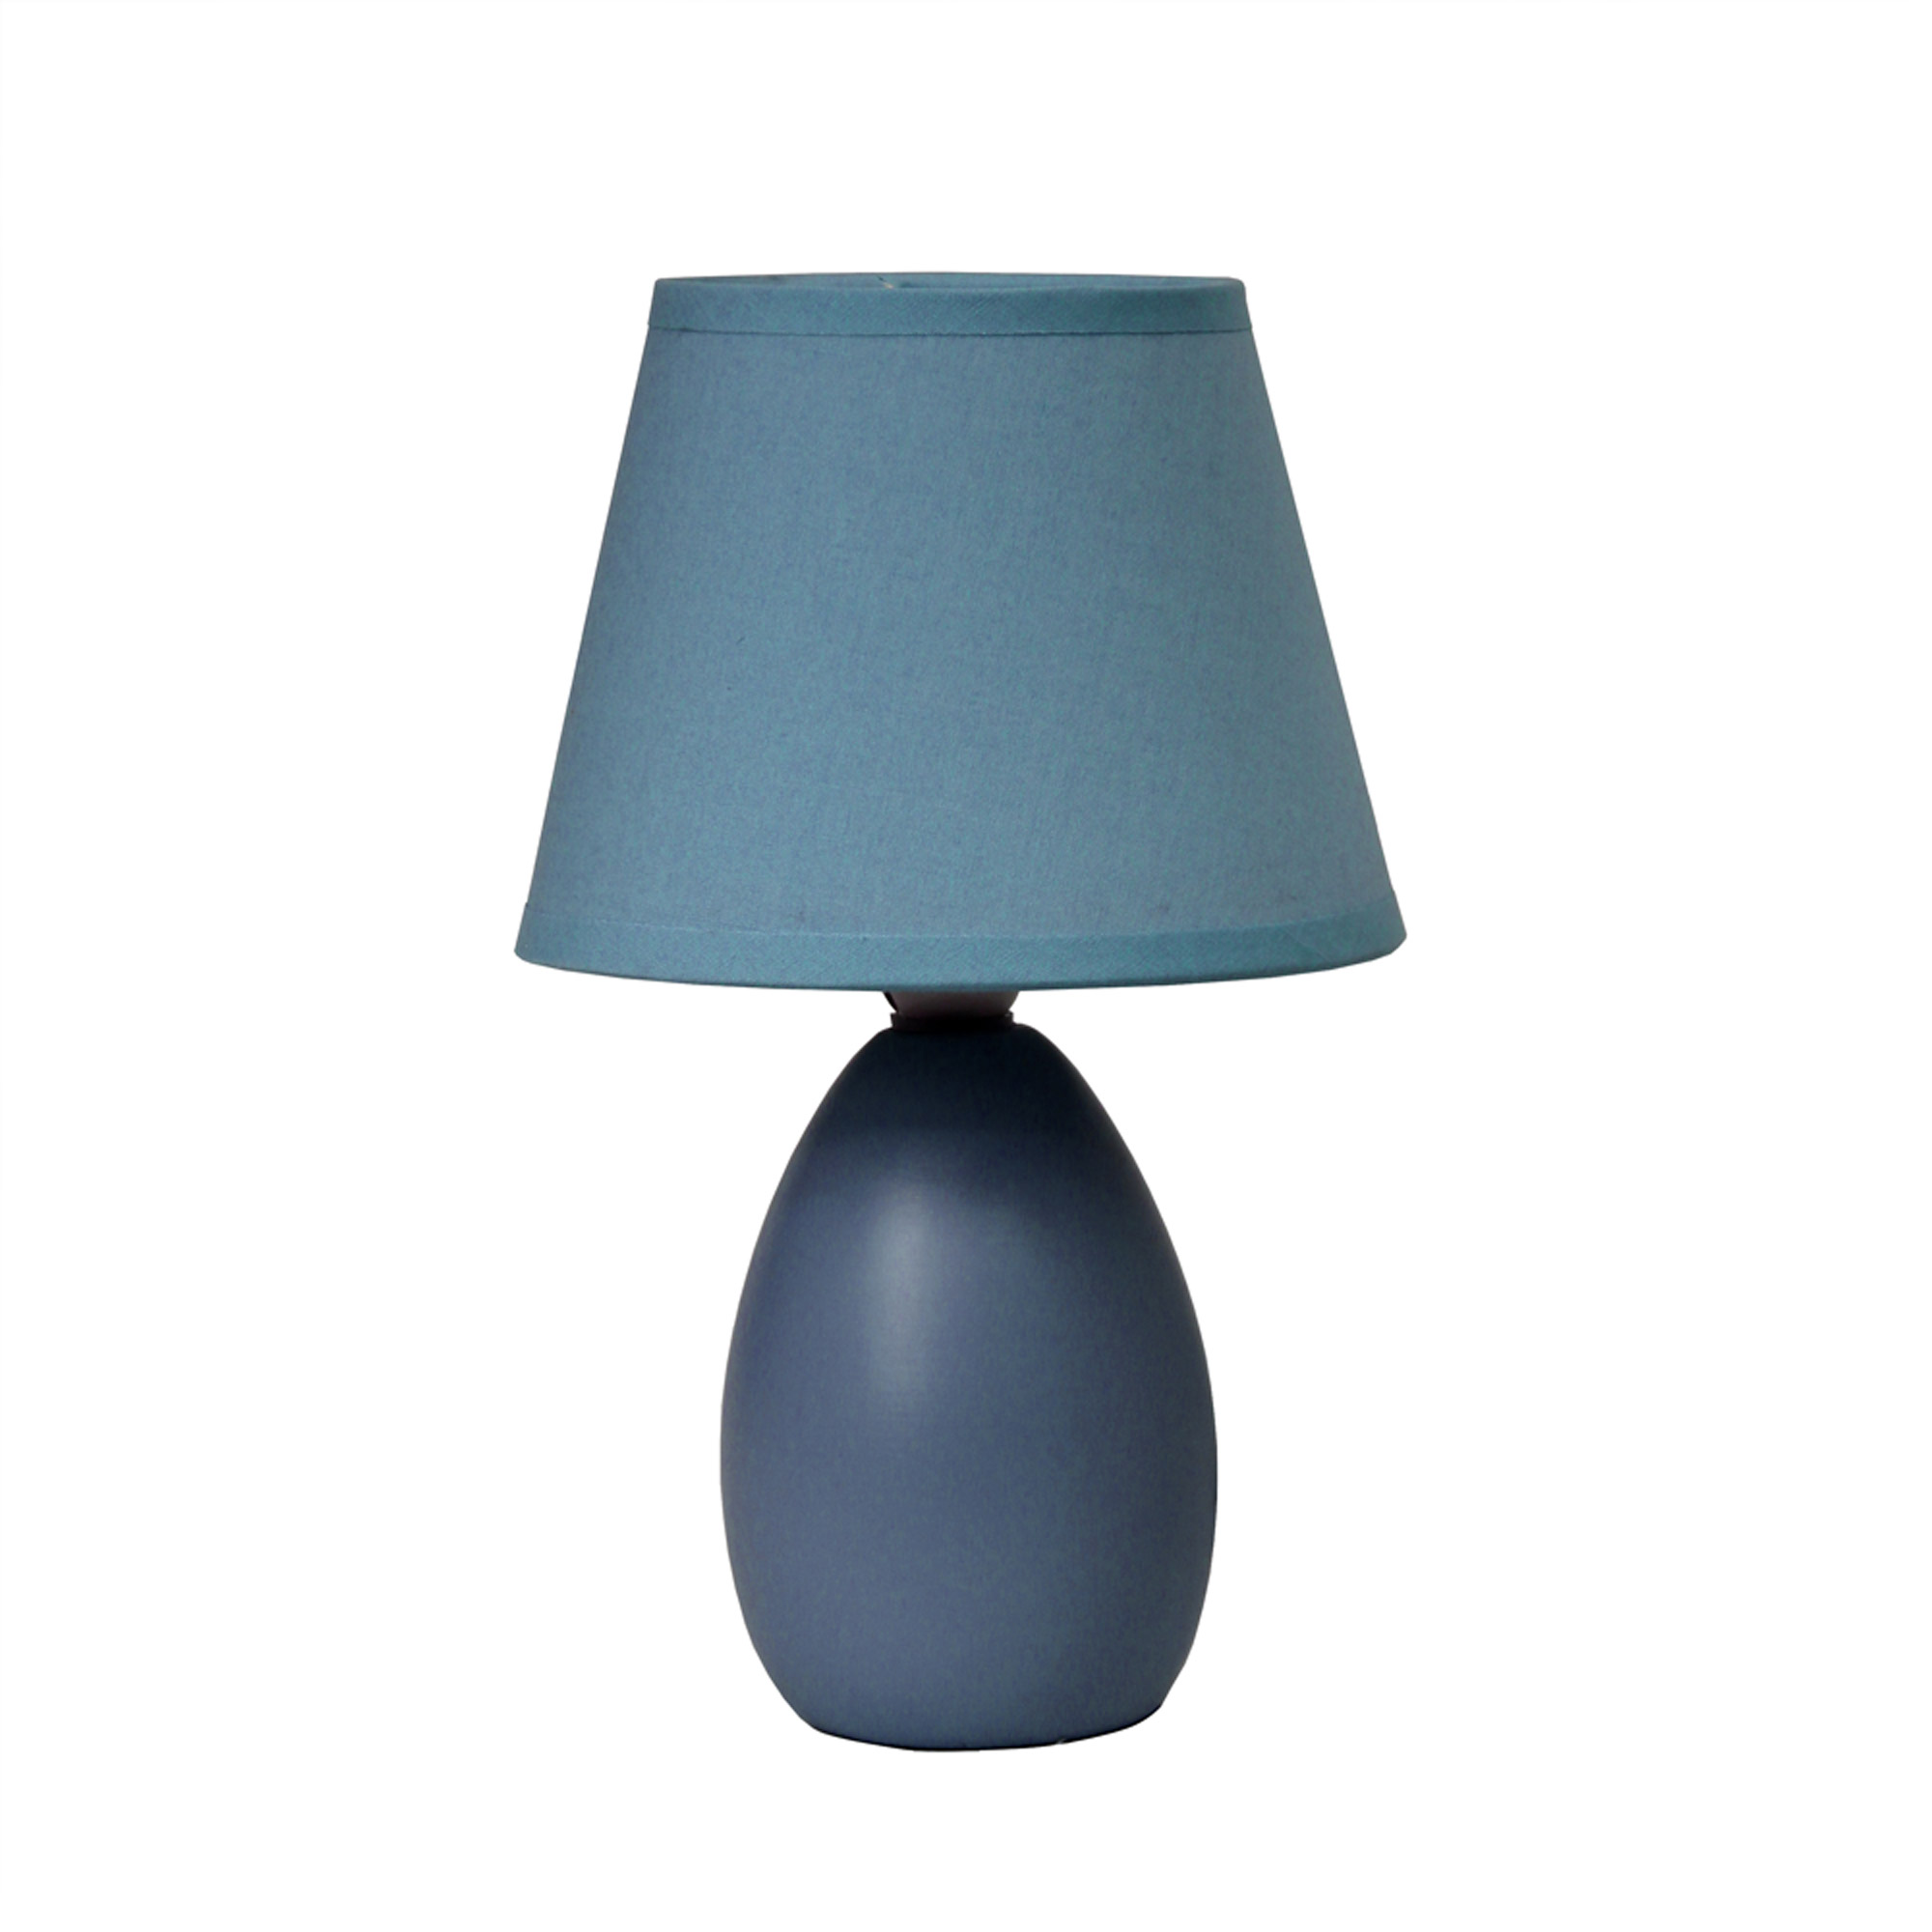 Erowin table lamp walmart geotapseo Choice Image